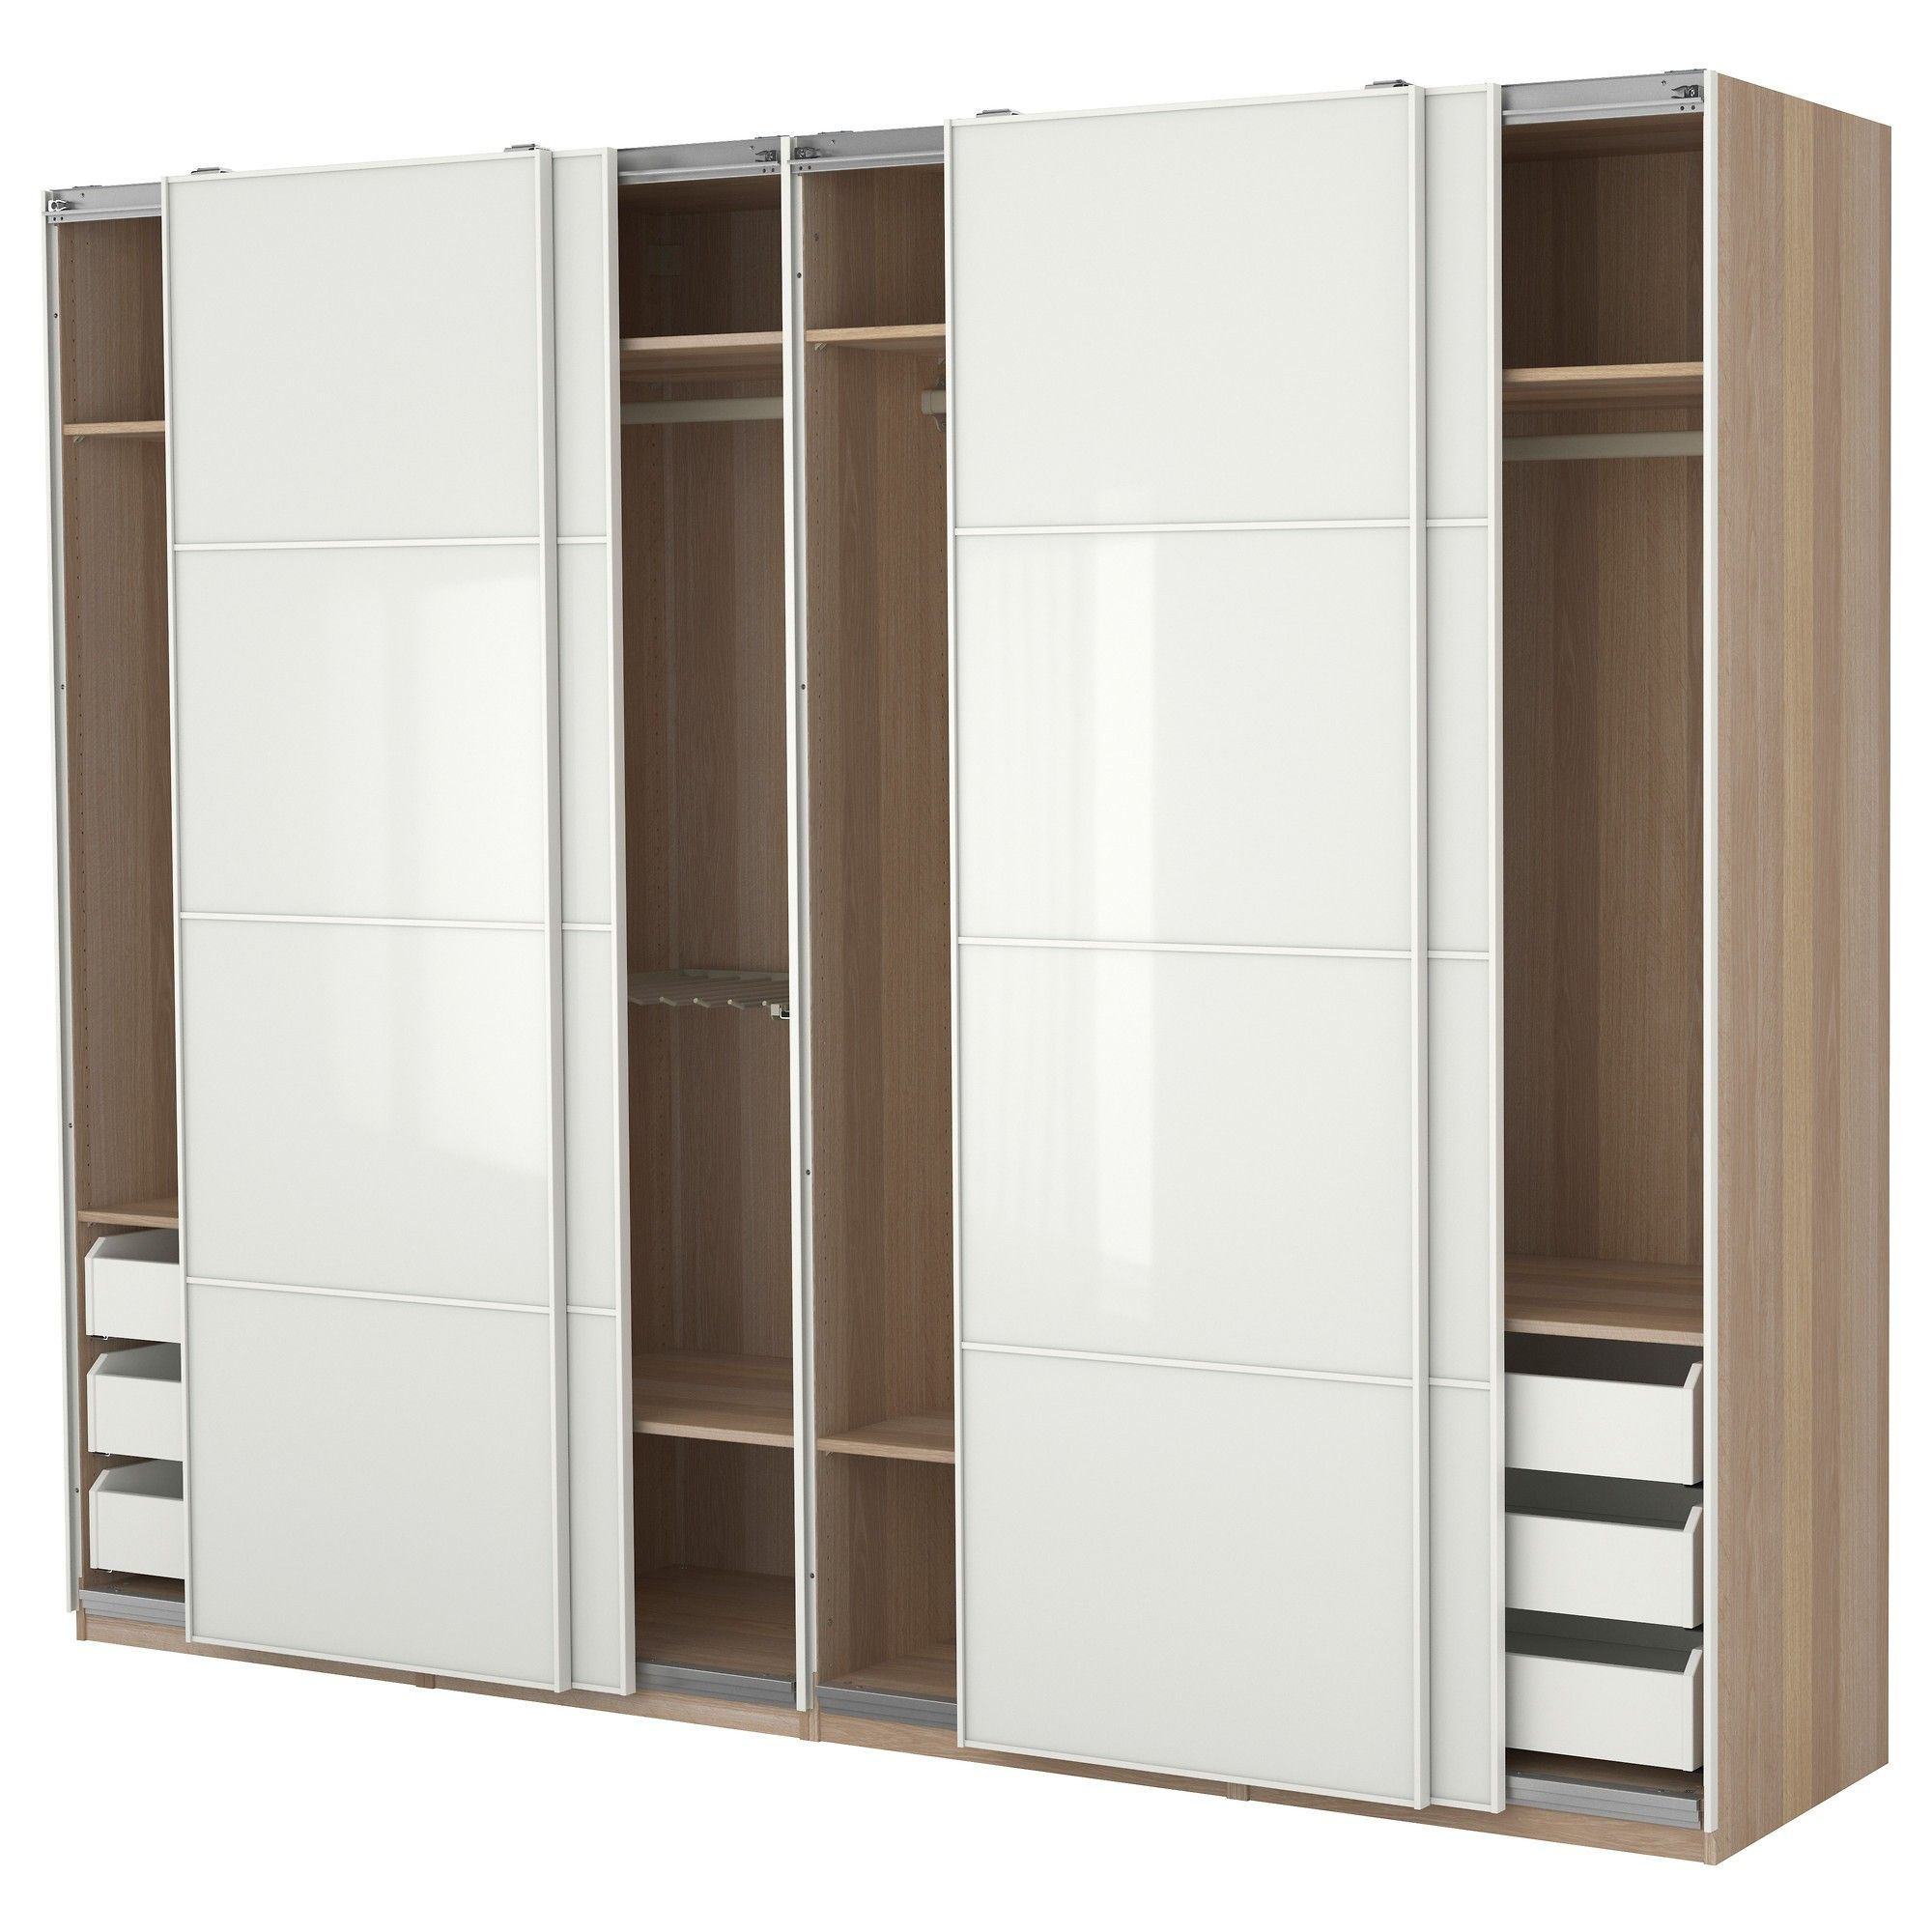 Interior Large Brown Wooden Closet With White Wooden Sliding